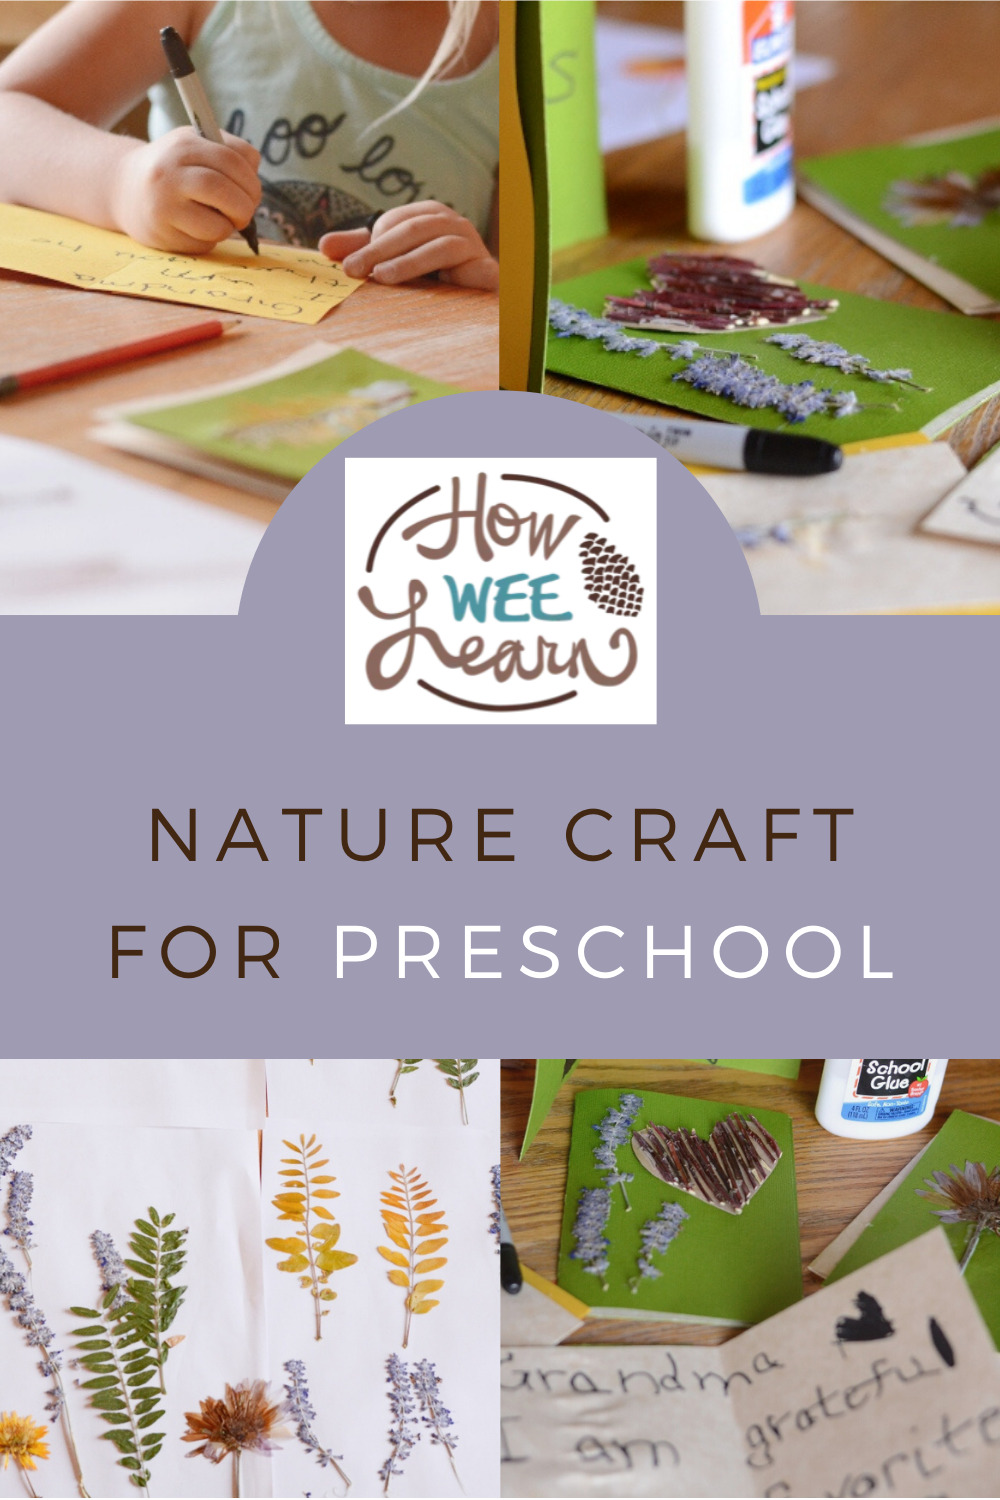 These nature cards are so gorgeous! Kids absolutely loved creating these cards and it's the perfect nature craft for preschoolers.